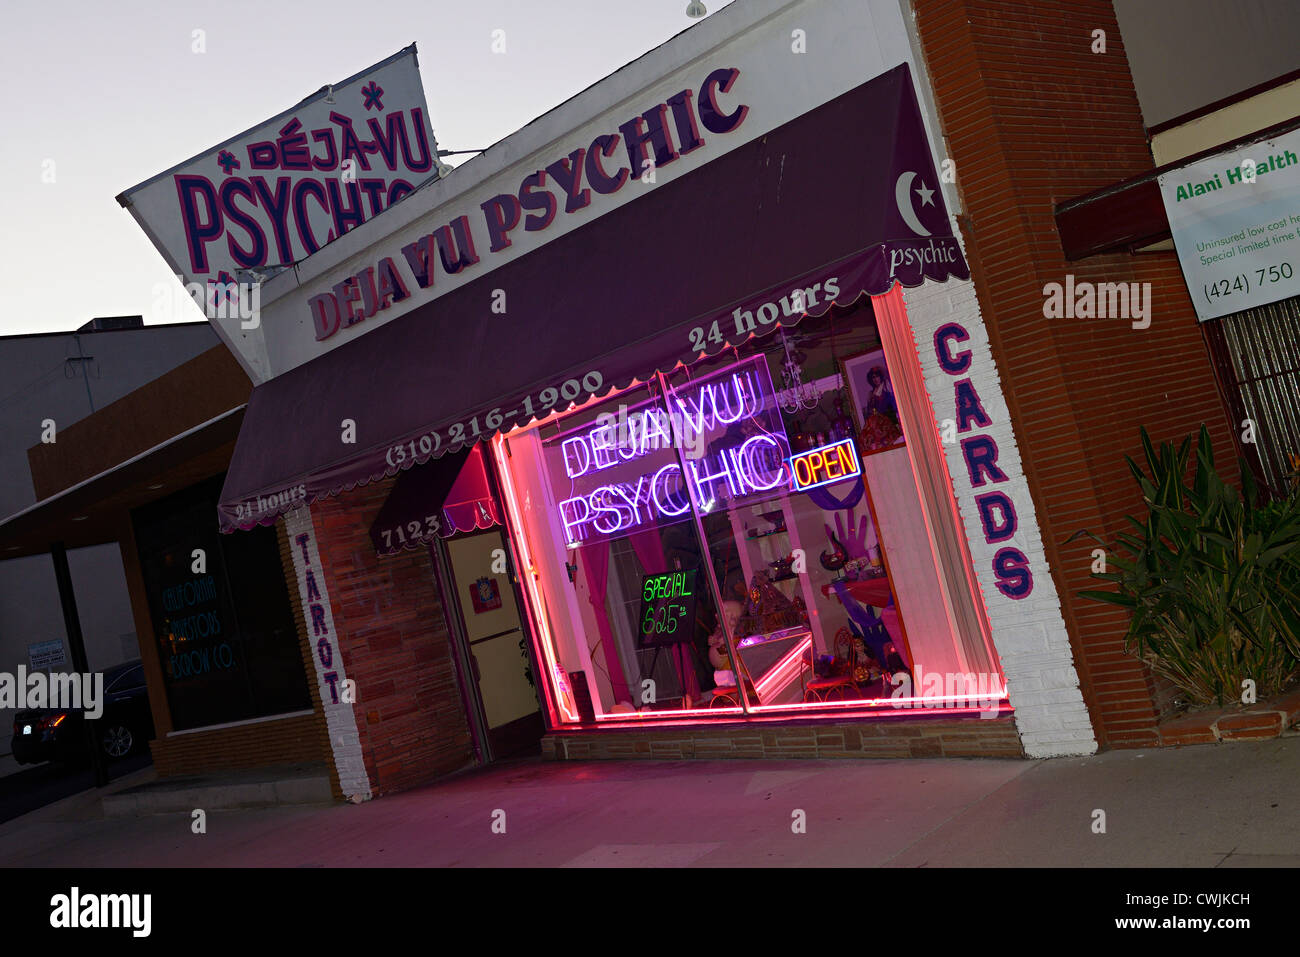 Psychic Store Stock Photos Psychic Store Stock Images Alamy